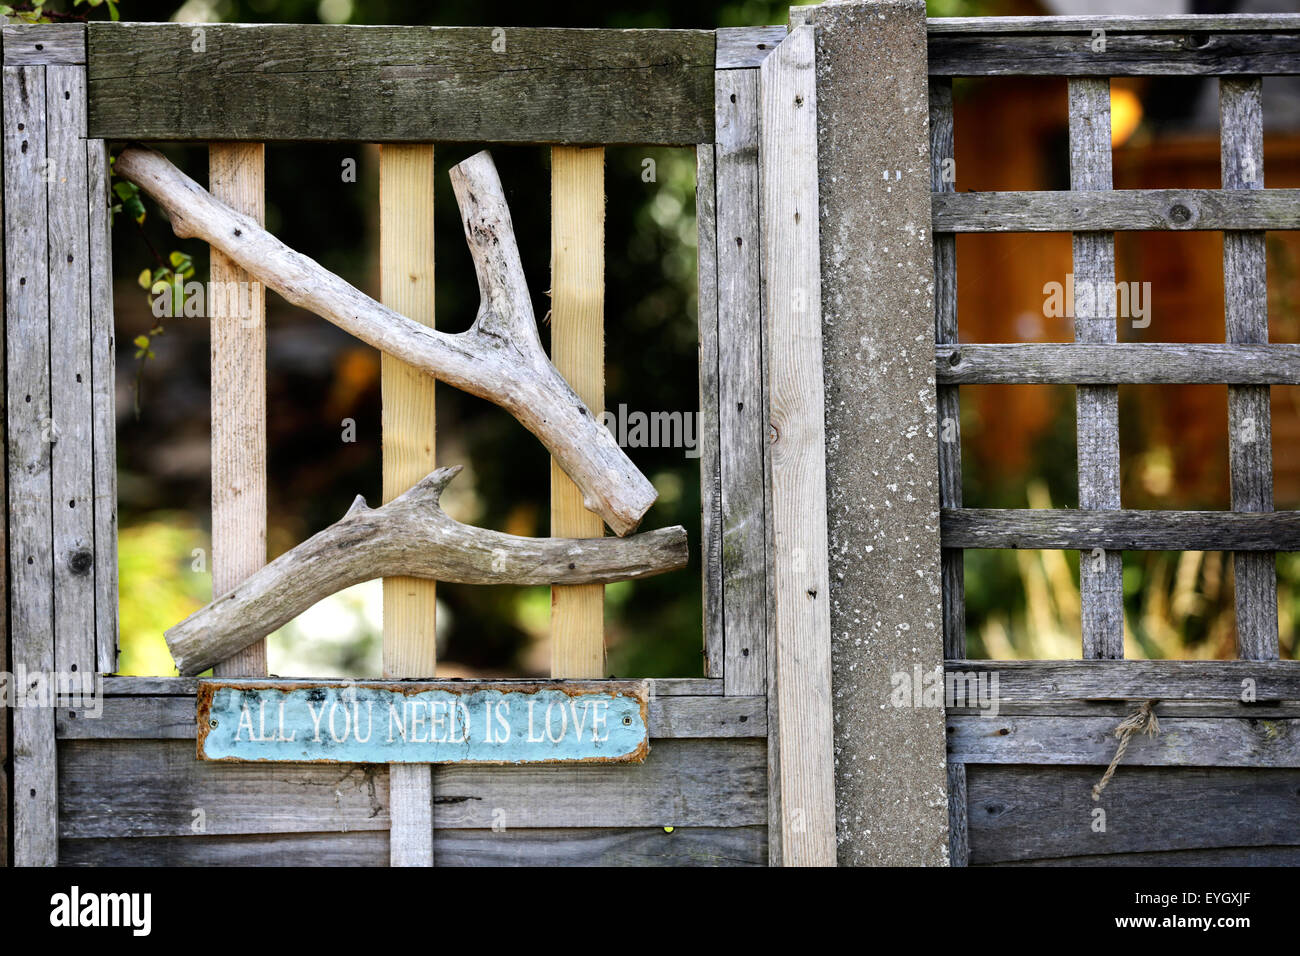 An old sign on a wooden gate that reads 'All you need is love' Stock Photo